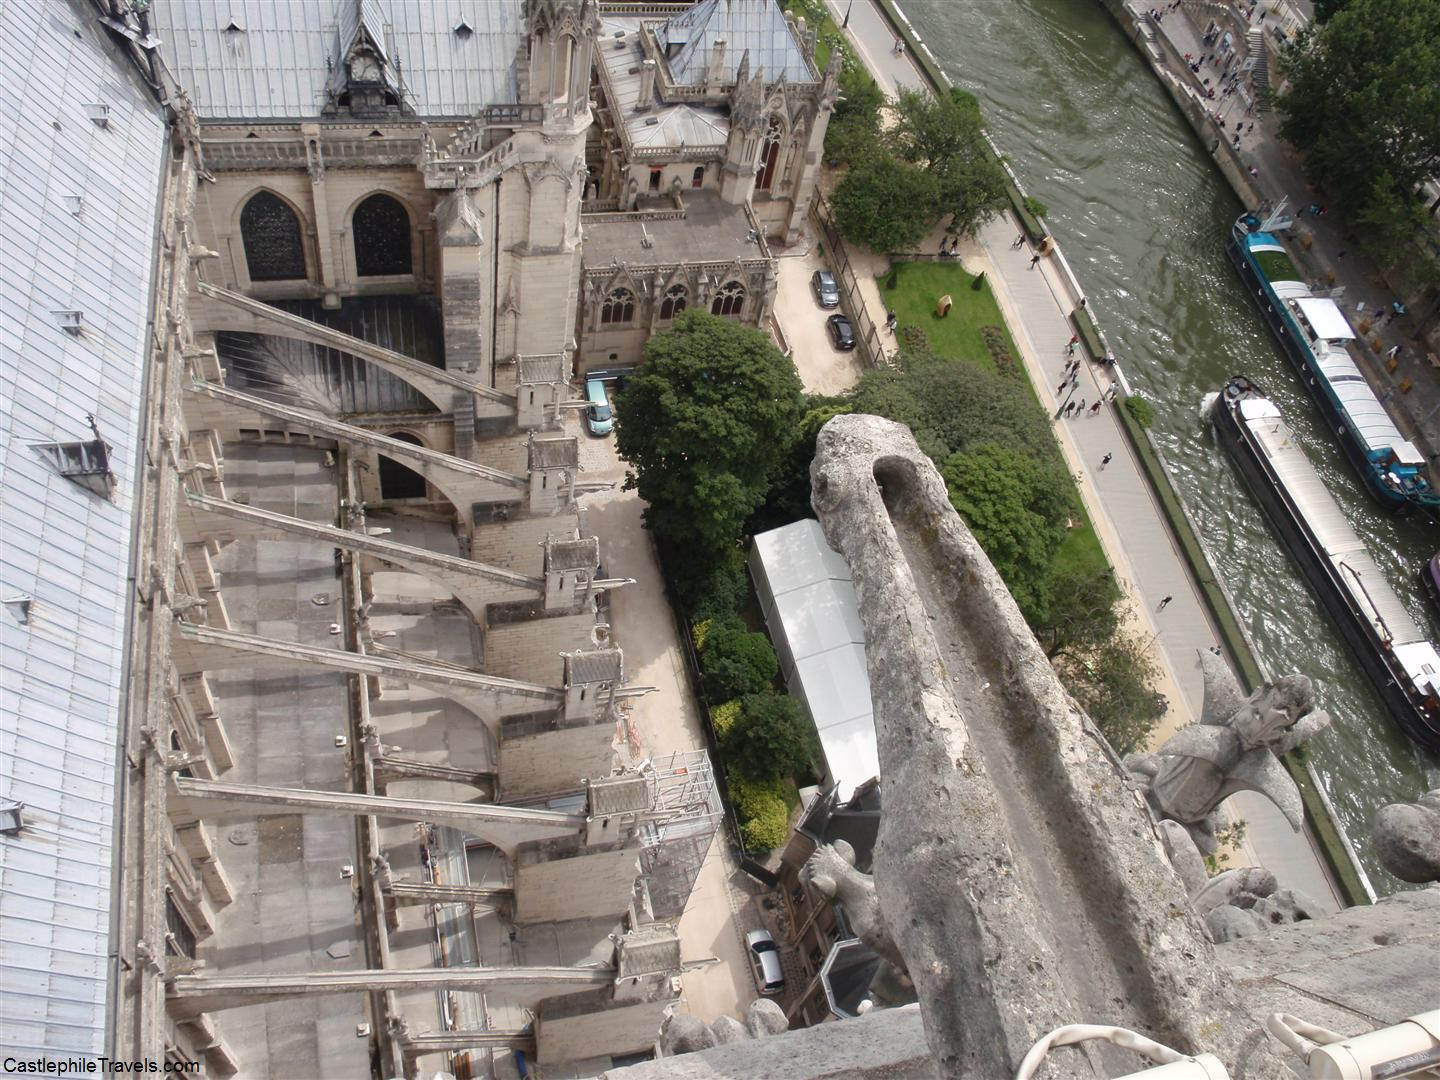 Looking down over the cathedral